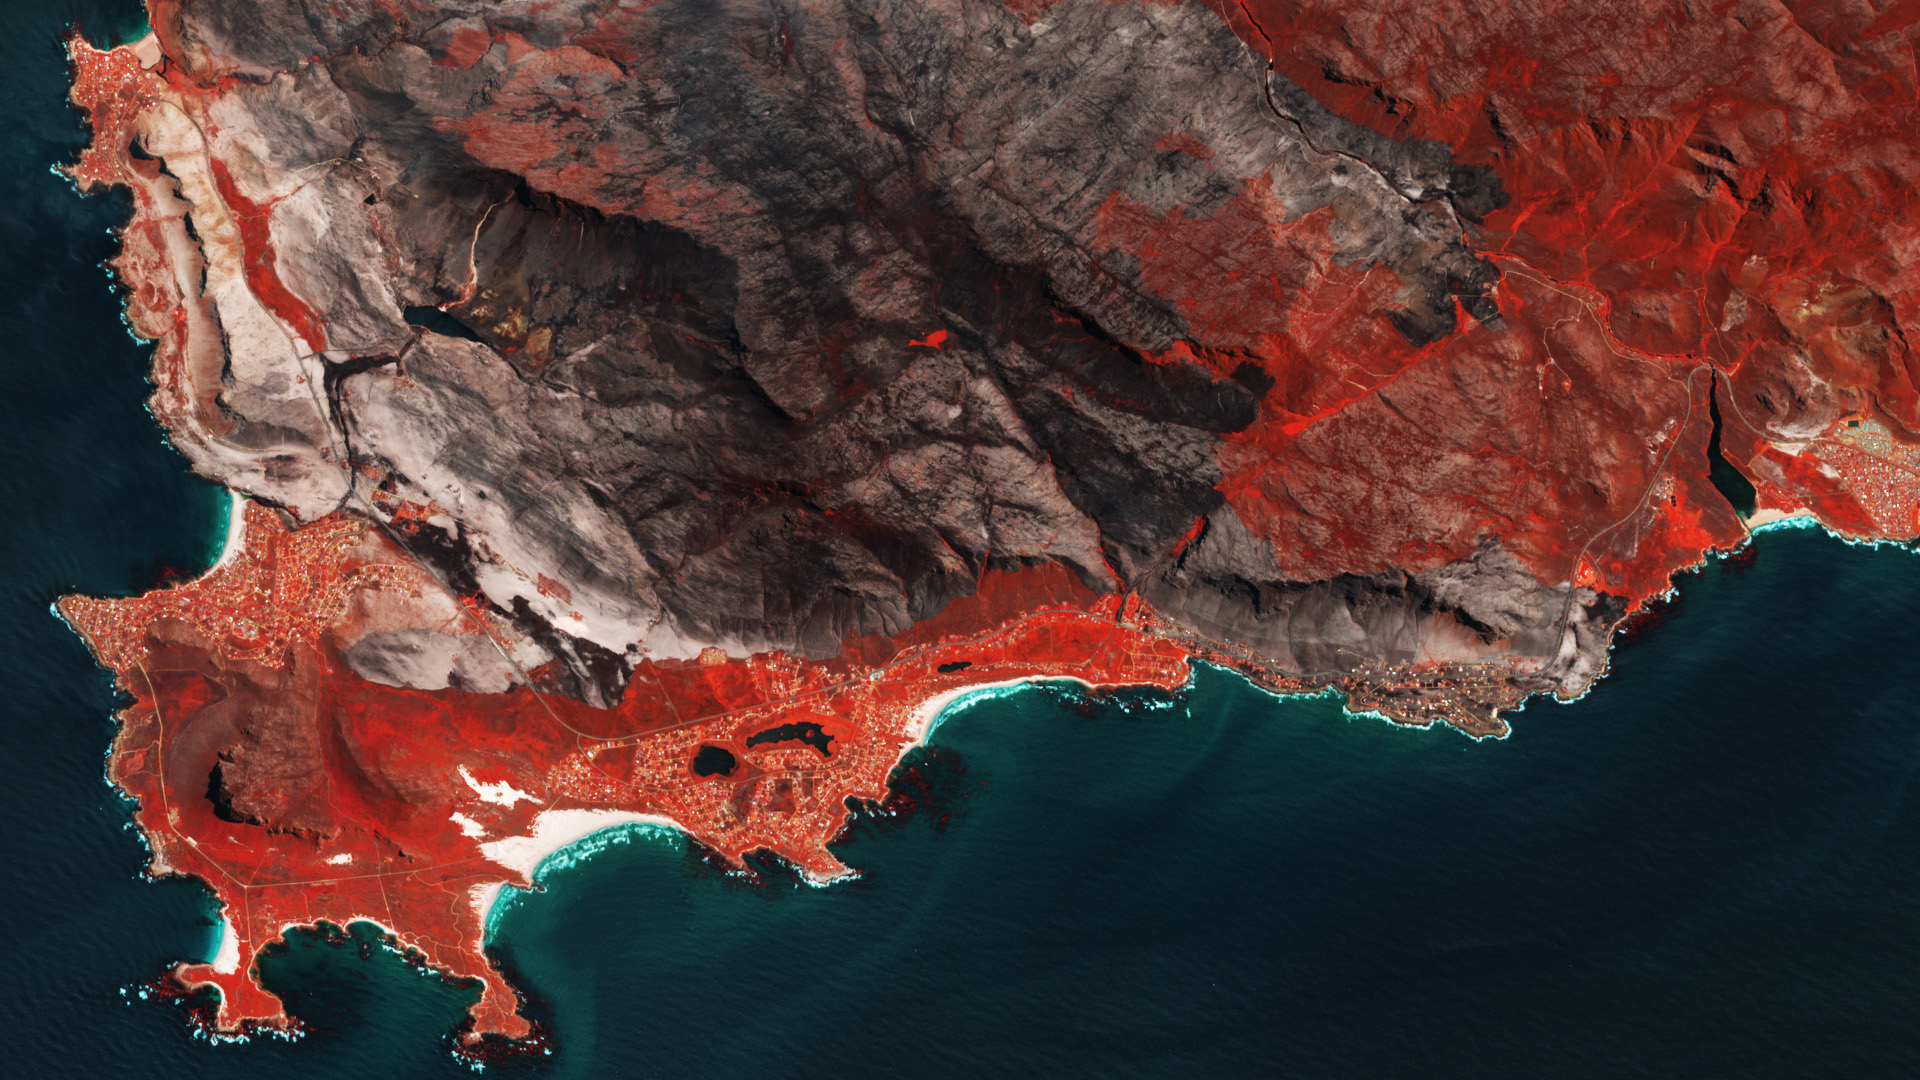 Satellites reveal more widespread burn scars across Africa • Earth.com